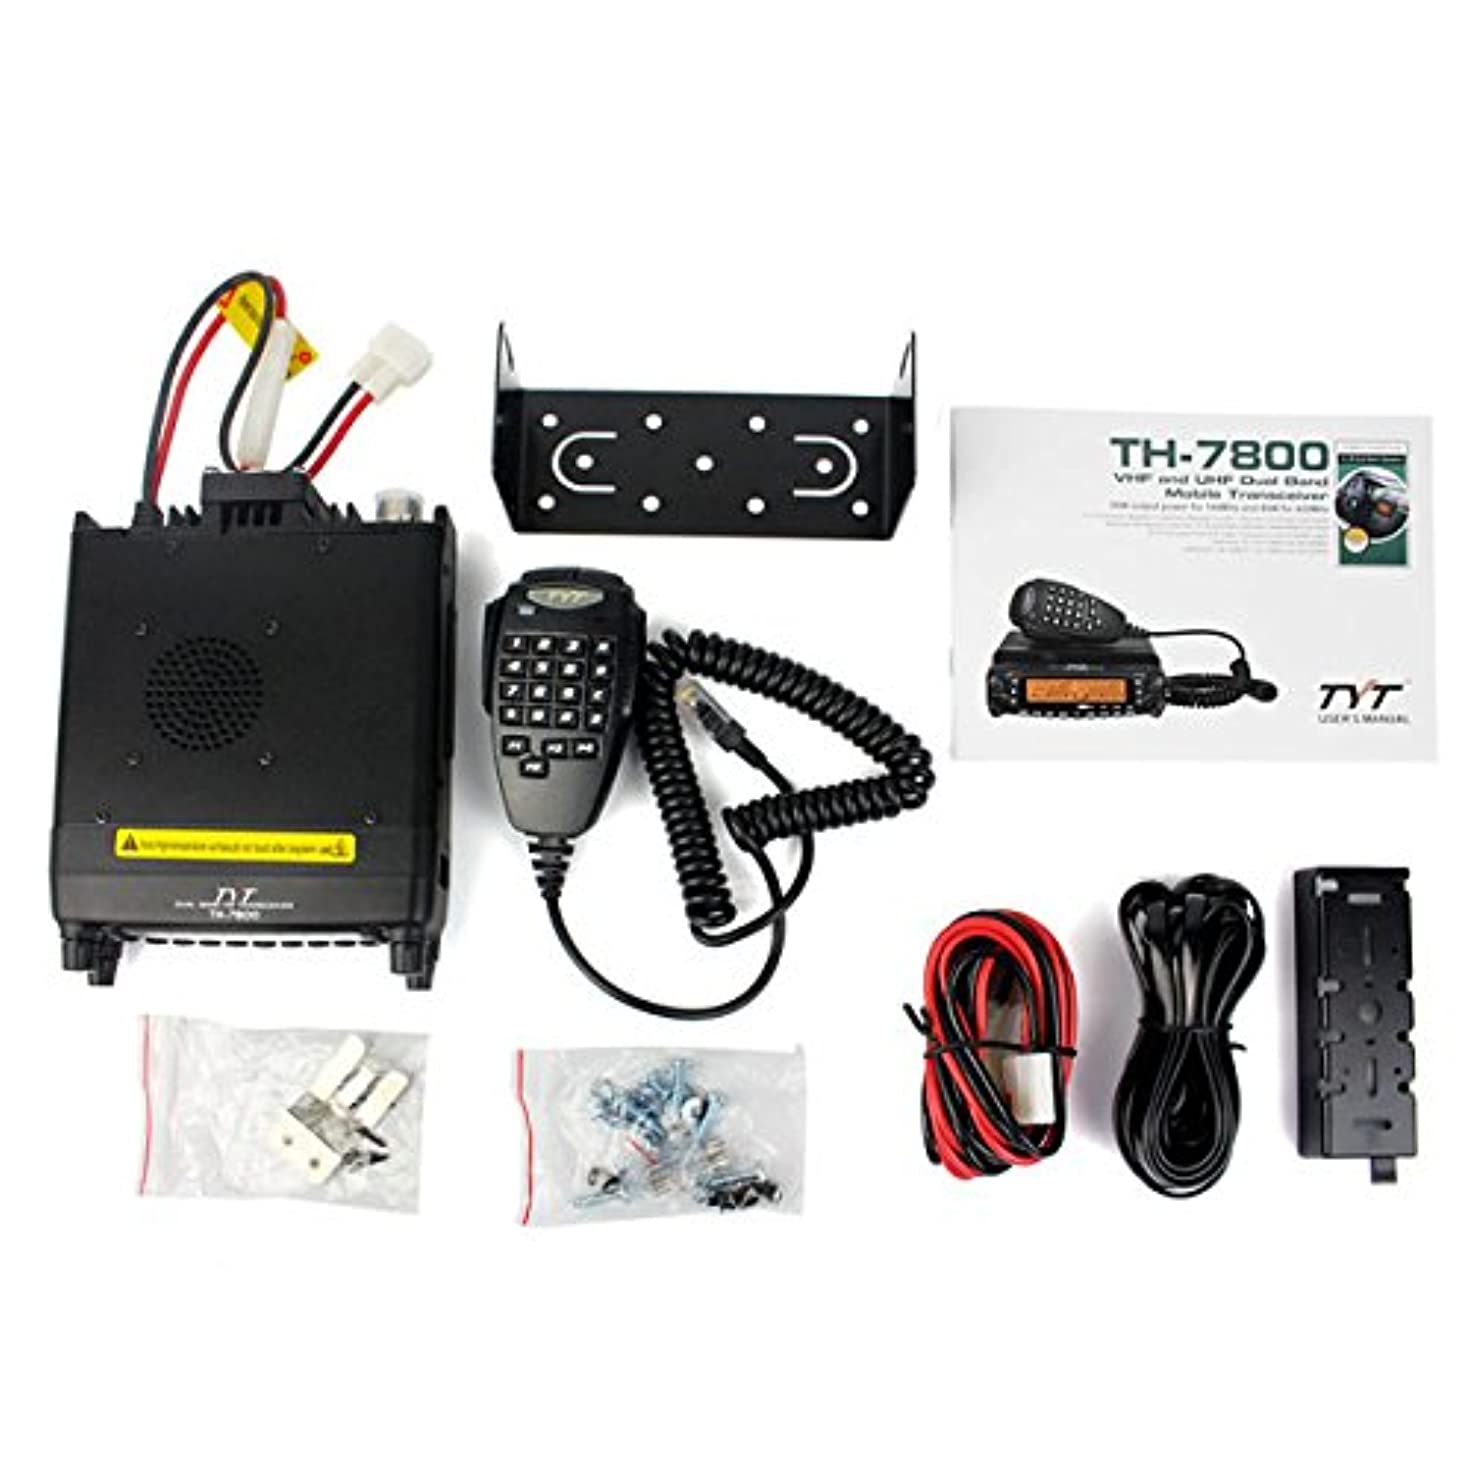 TH-7800 Dual Band 136-174/400-480MHz 50W VHF/40W UHF Mobile Transceiver